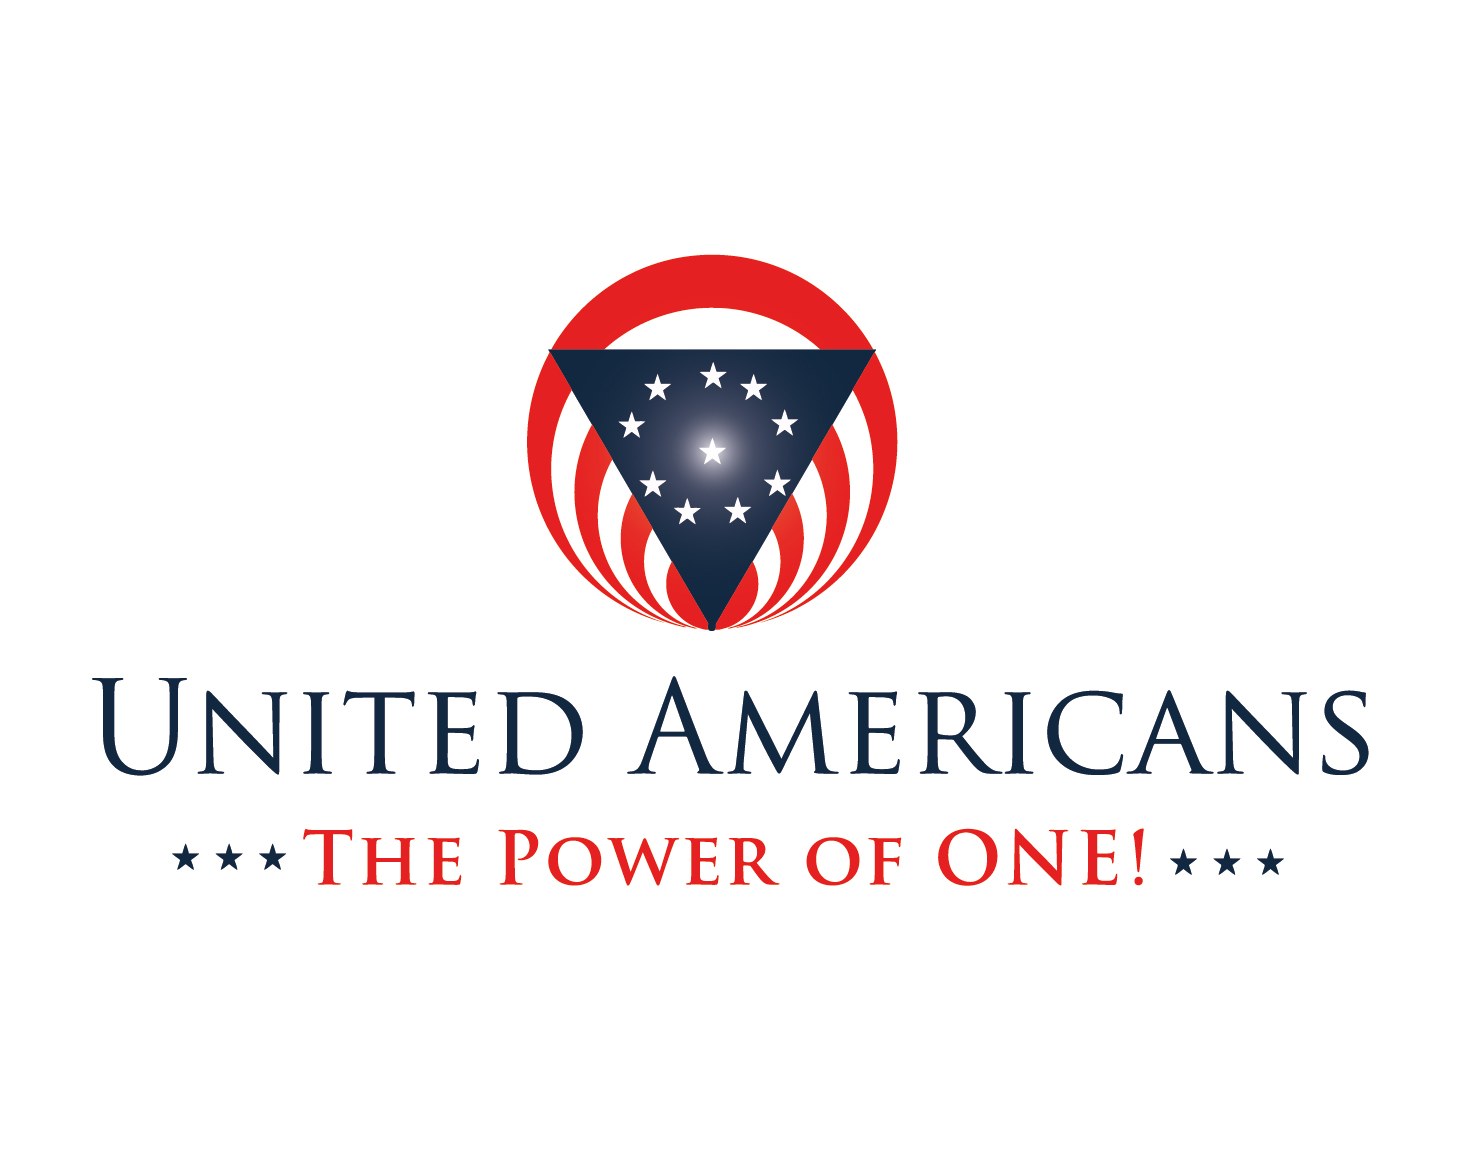 Logo Design by VENTSISLAV KOVACHEV - Entry No. 22 in the Logo Design Contest Creative Logo Design for United Americans.